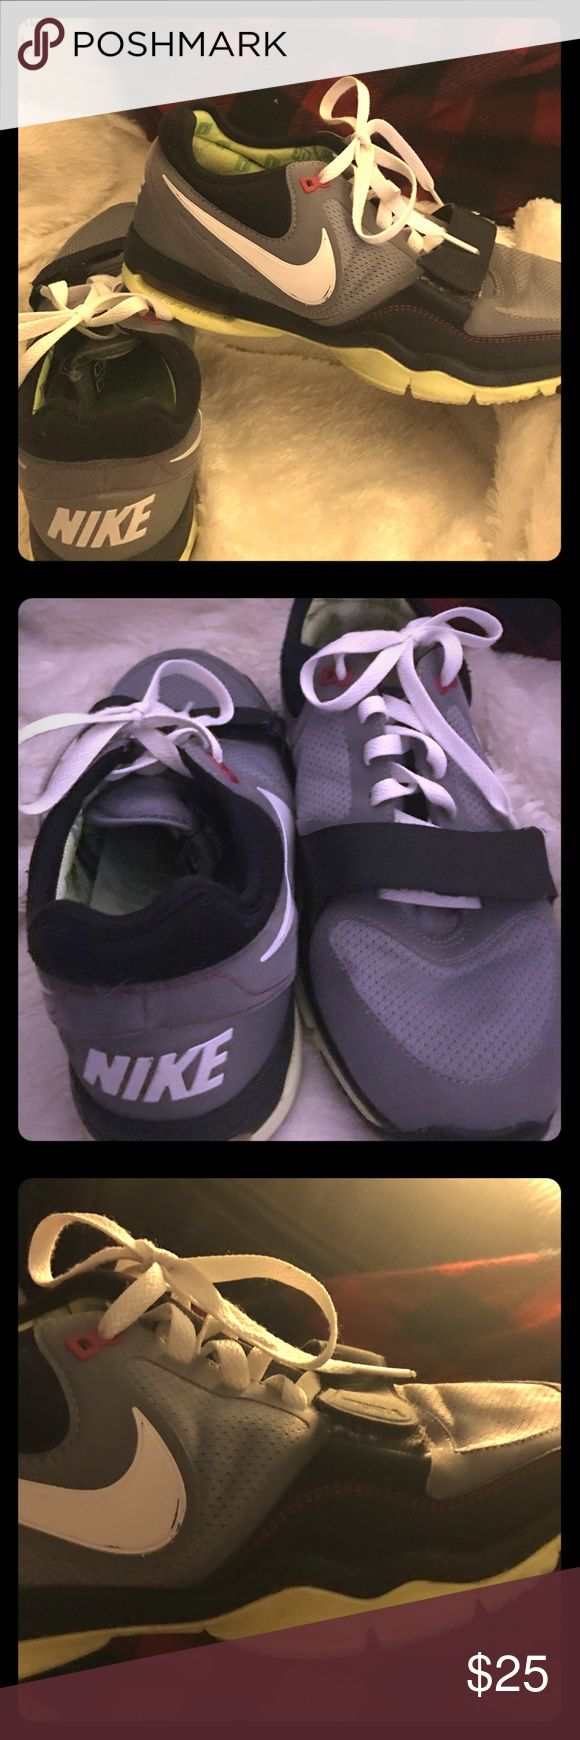 Nike Trainer One - Women's 9 These shoes are super comfy and feel great on! They are black, grey, white and a light neon yellow. They look even better on and super cute with jeans! Too many pairs of shoes so trying to downsize! Nike Shoes Athletic Shoes